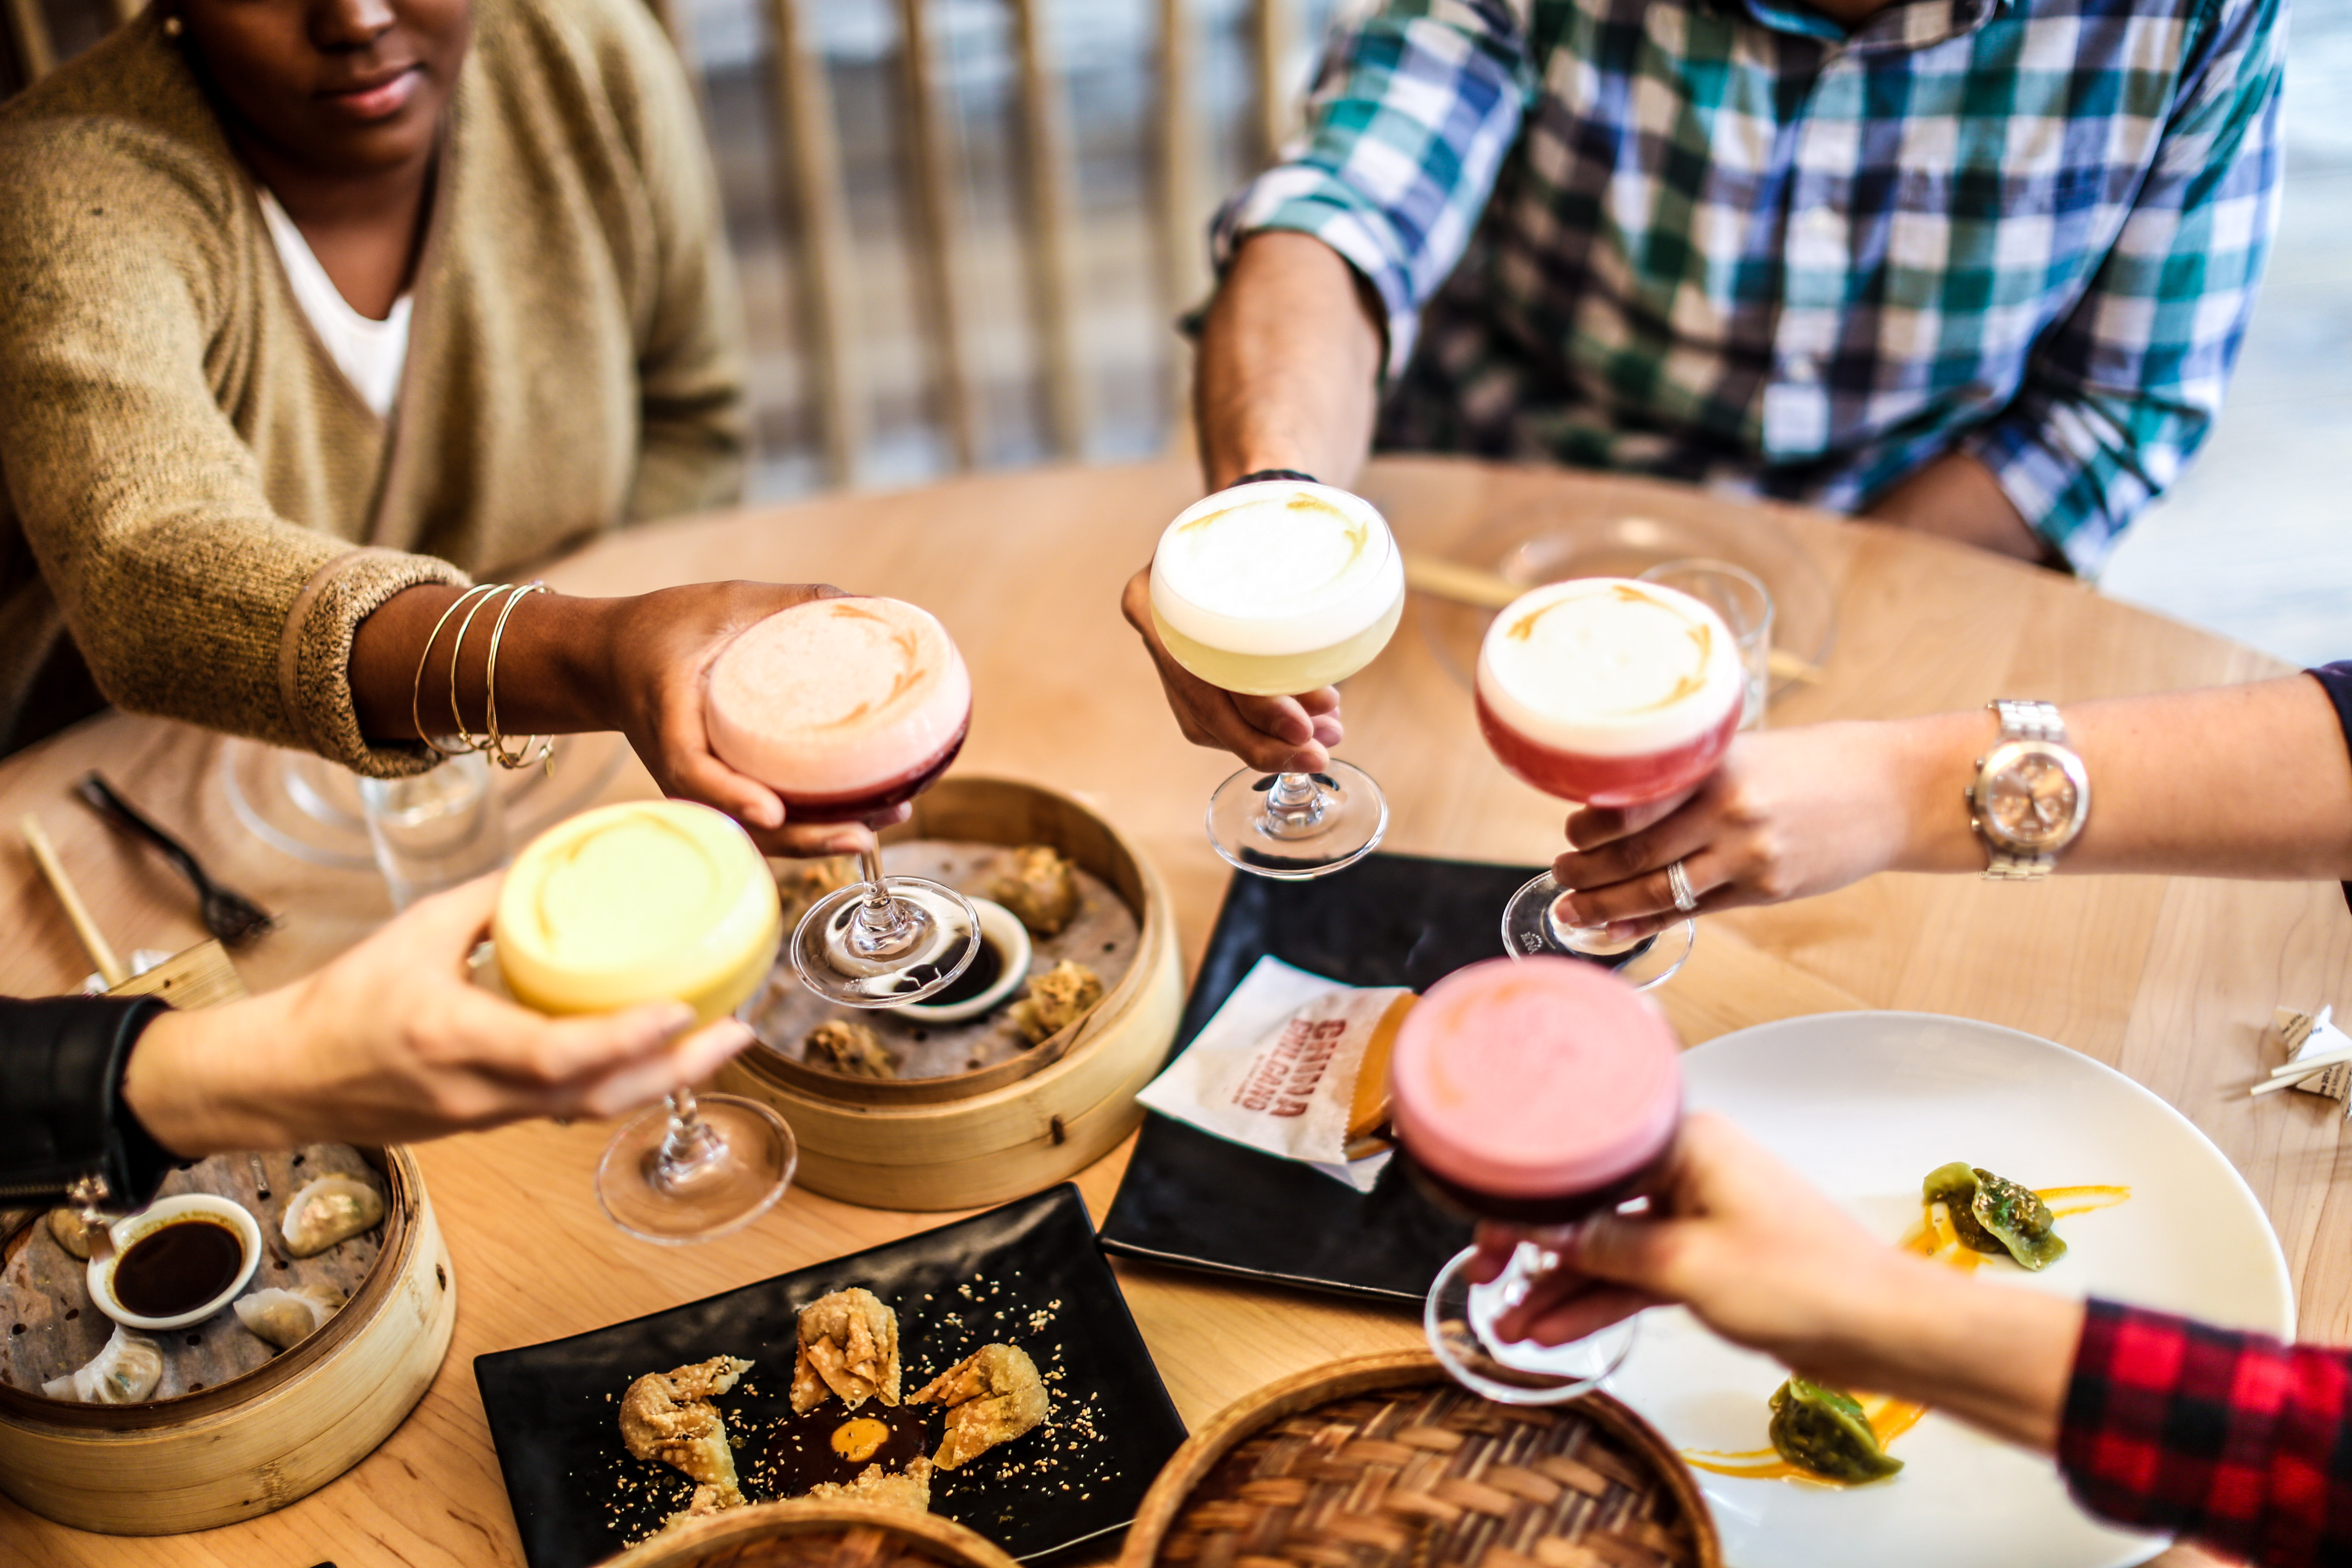 The first Saturday in February is always National Pisco Sour Day in Peru, and China Chilcano is celebrating here in D.C. with $5 Pisco Sours! (Image: Farrah Skeiky/ Courtesy China Chilcano)